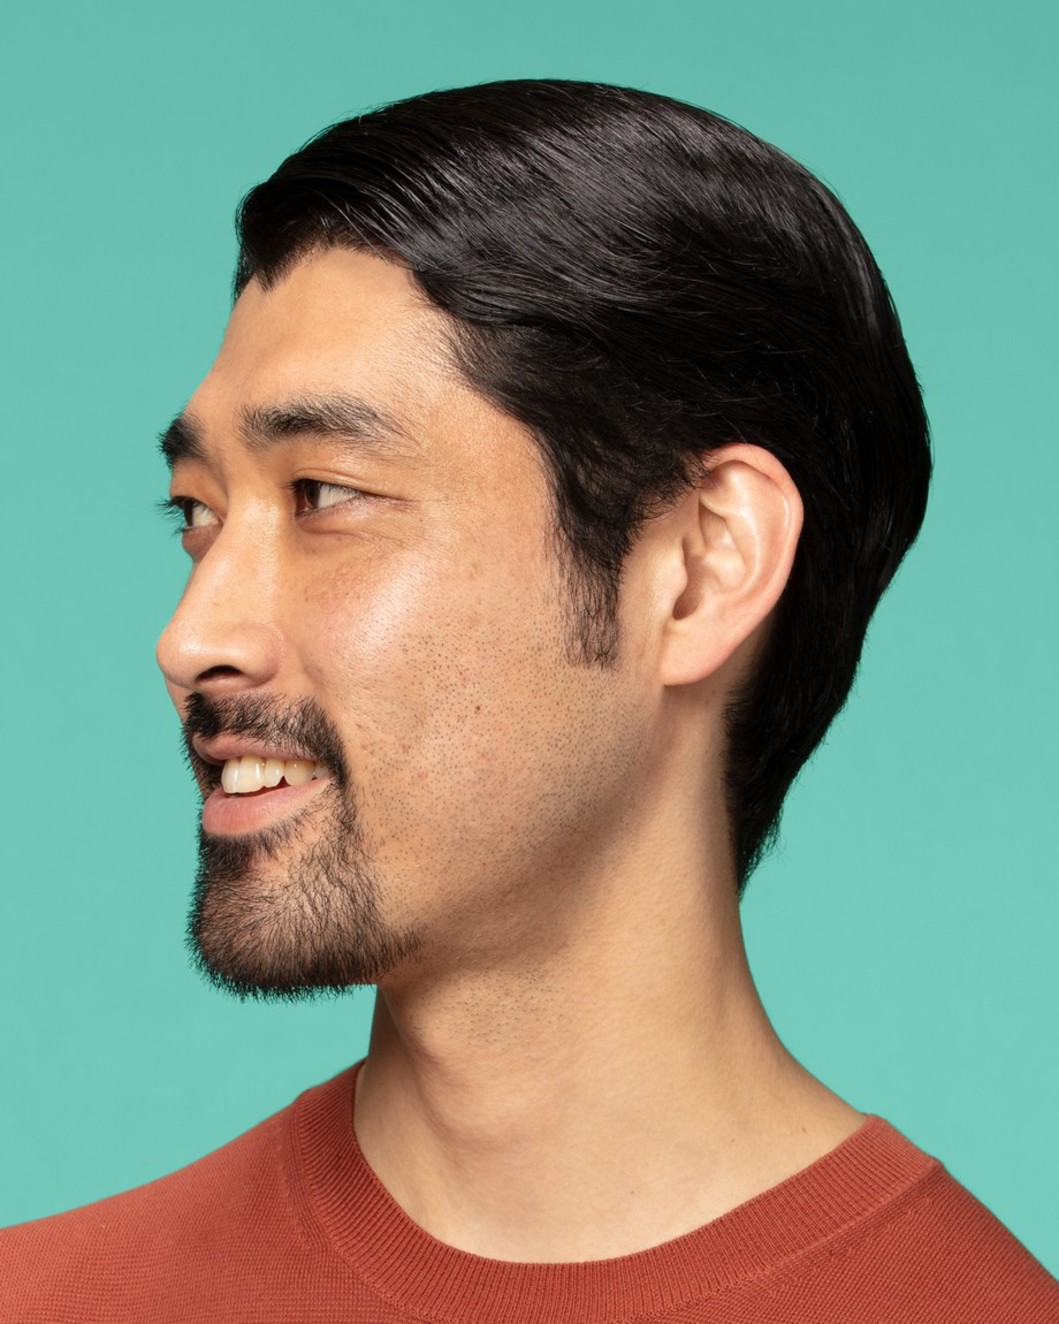 Guy with short hair using the gel